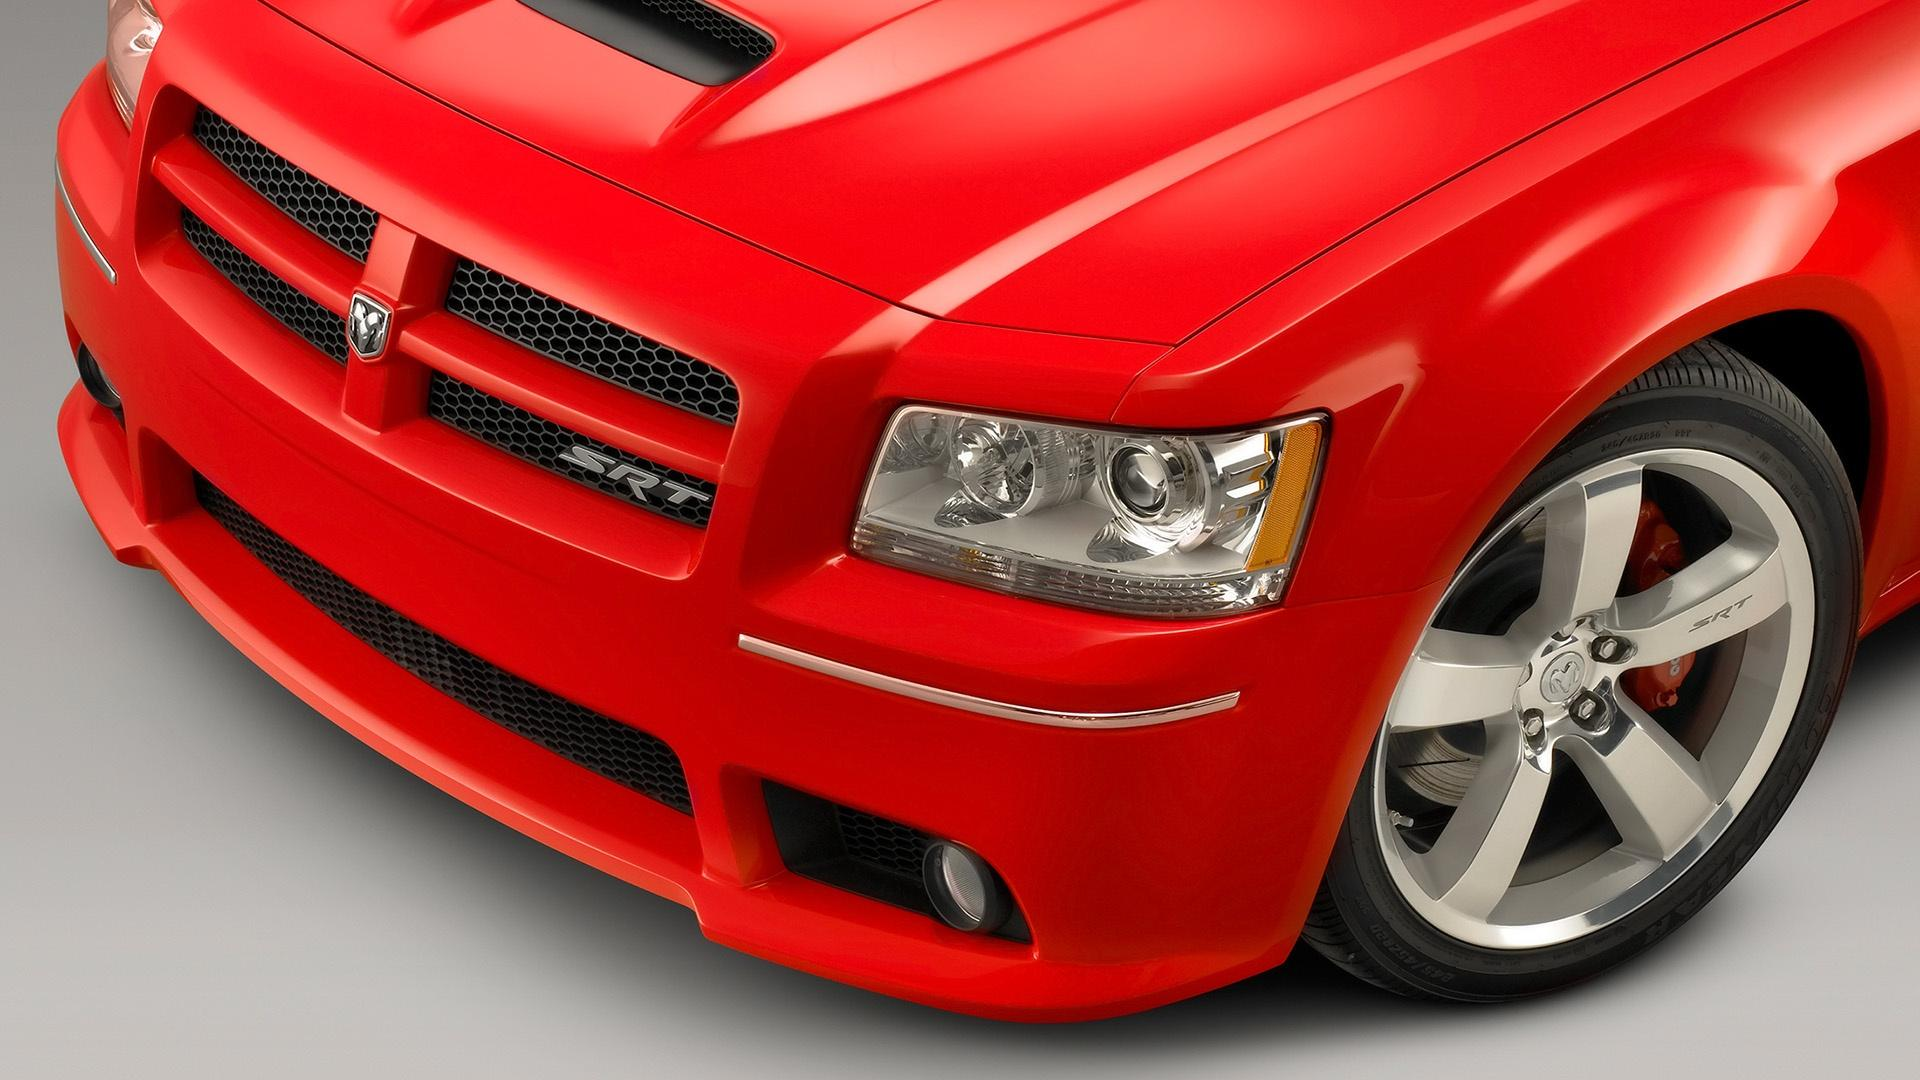 2008 Dodge Magnum Srt8 Front Section 1920x1080